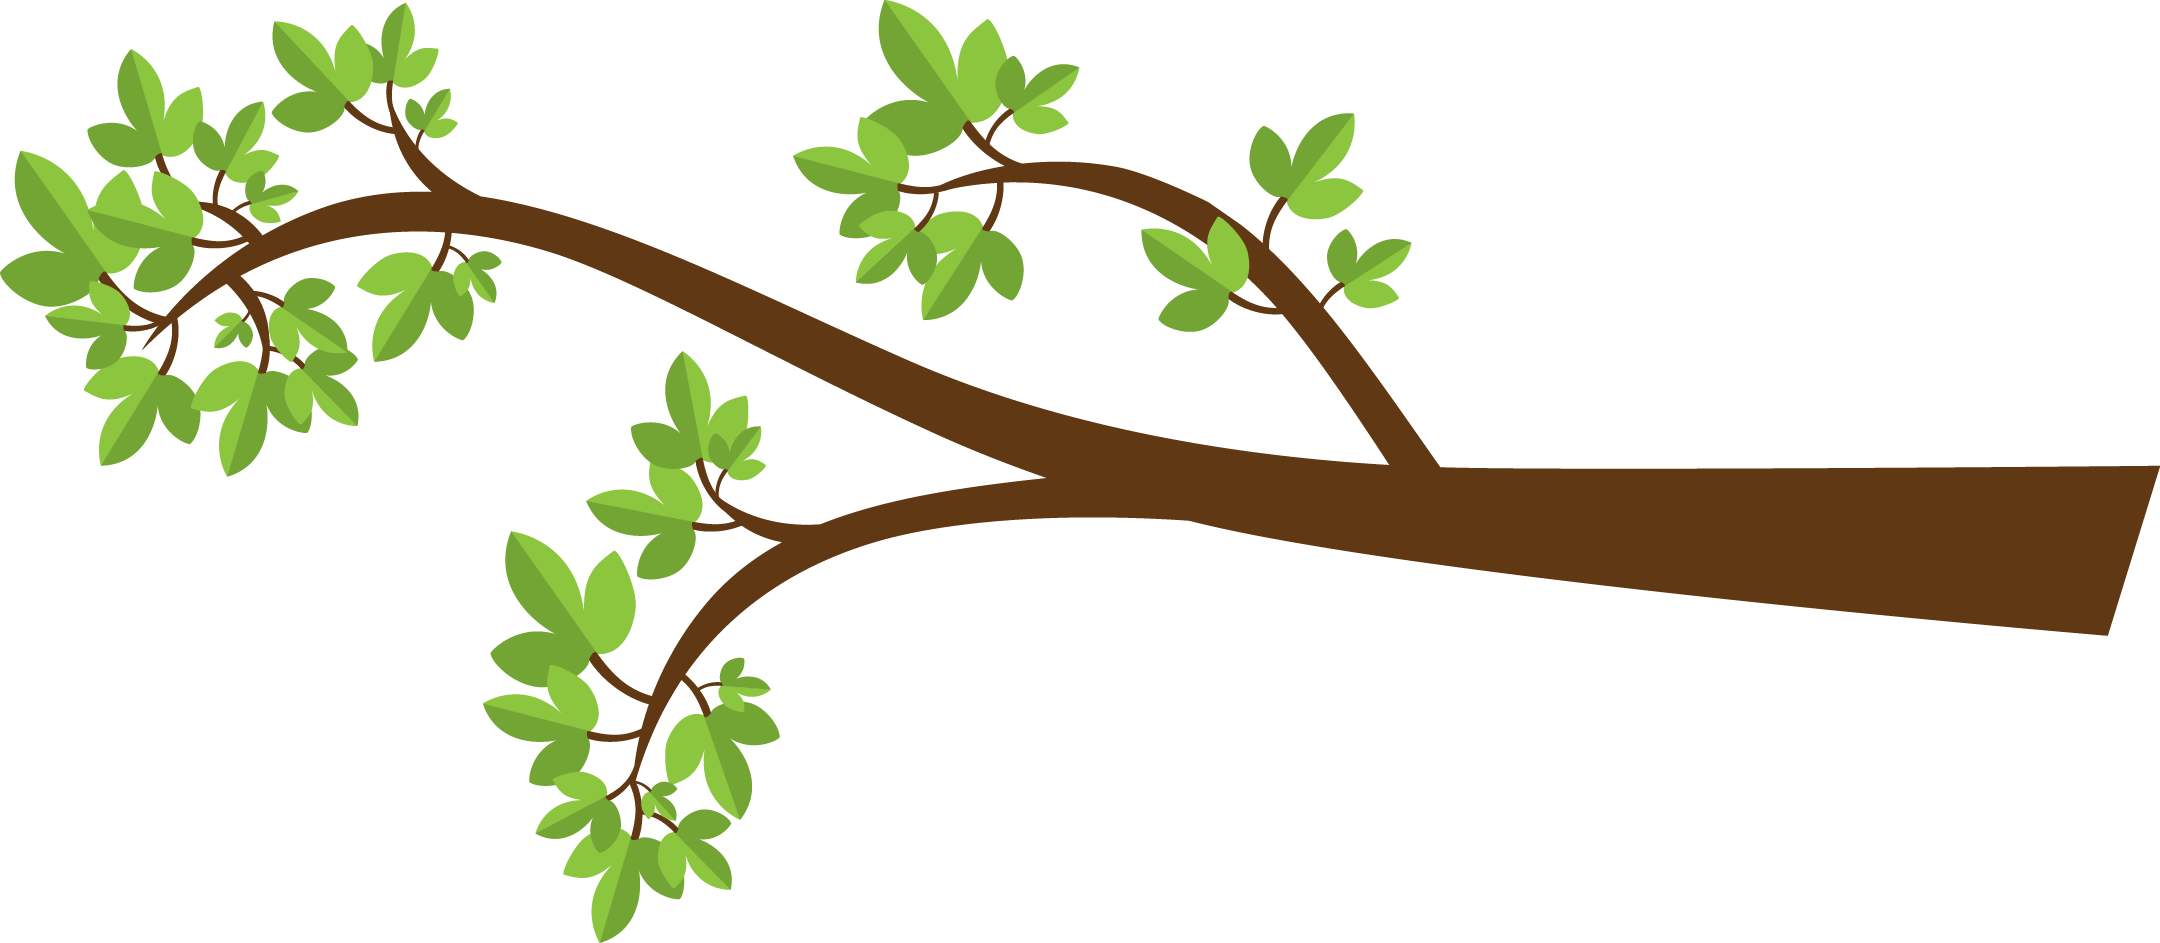 clip library library Image of tree best. Branch clipart woodland branch